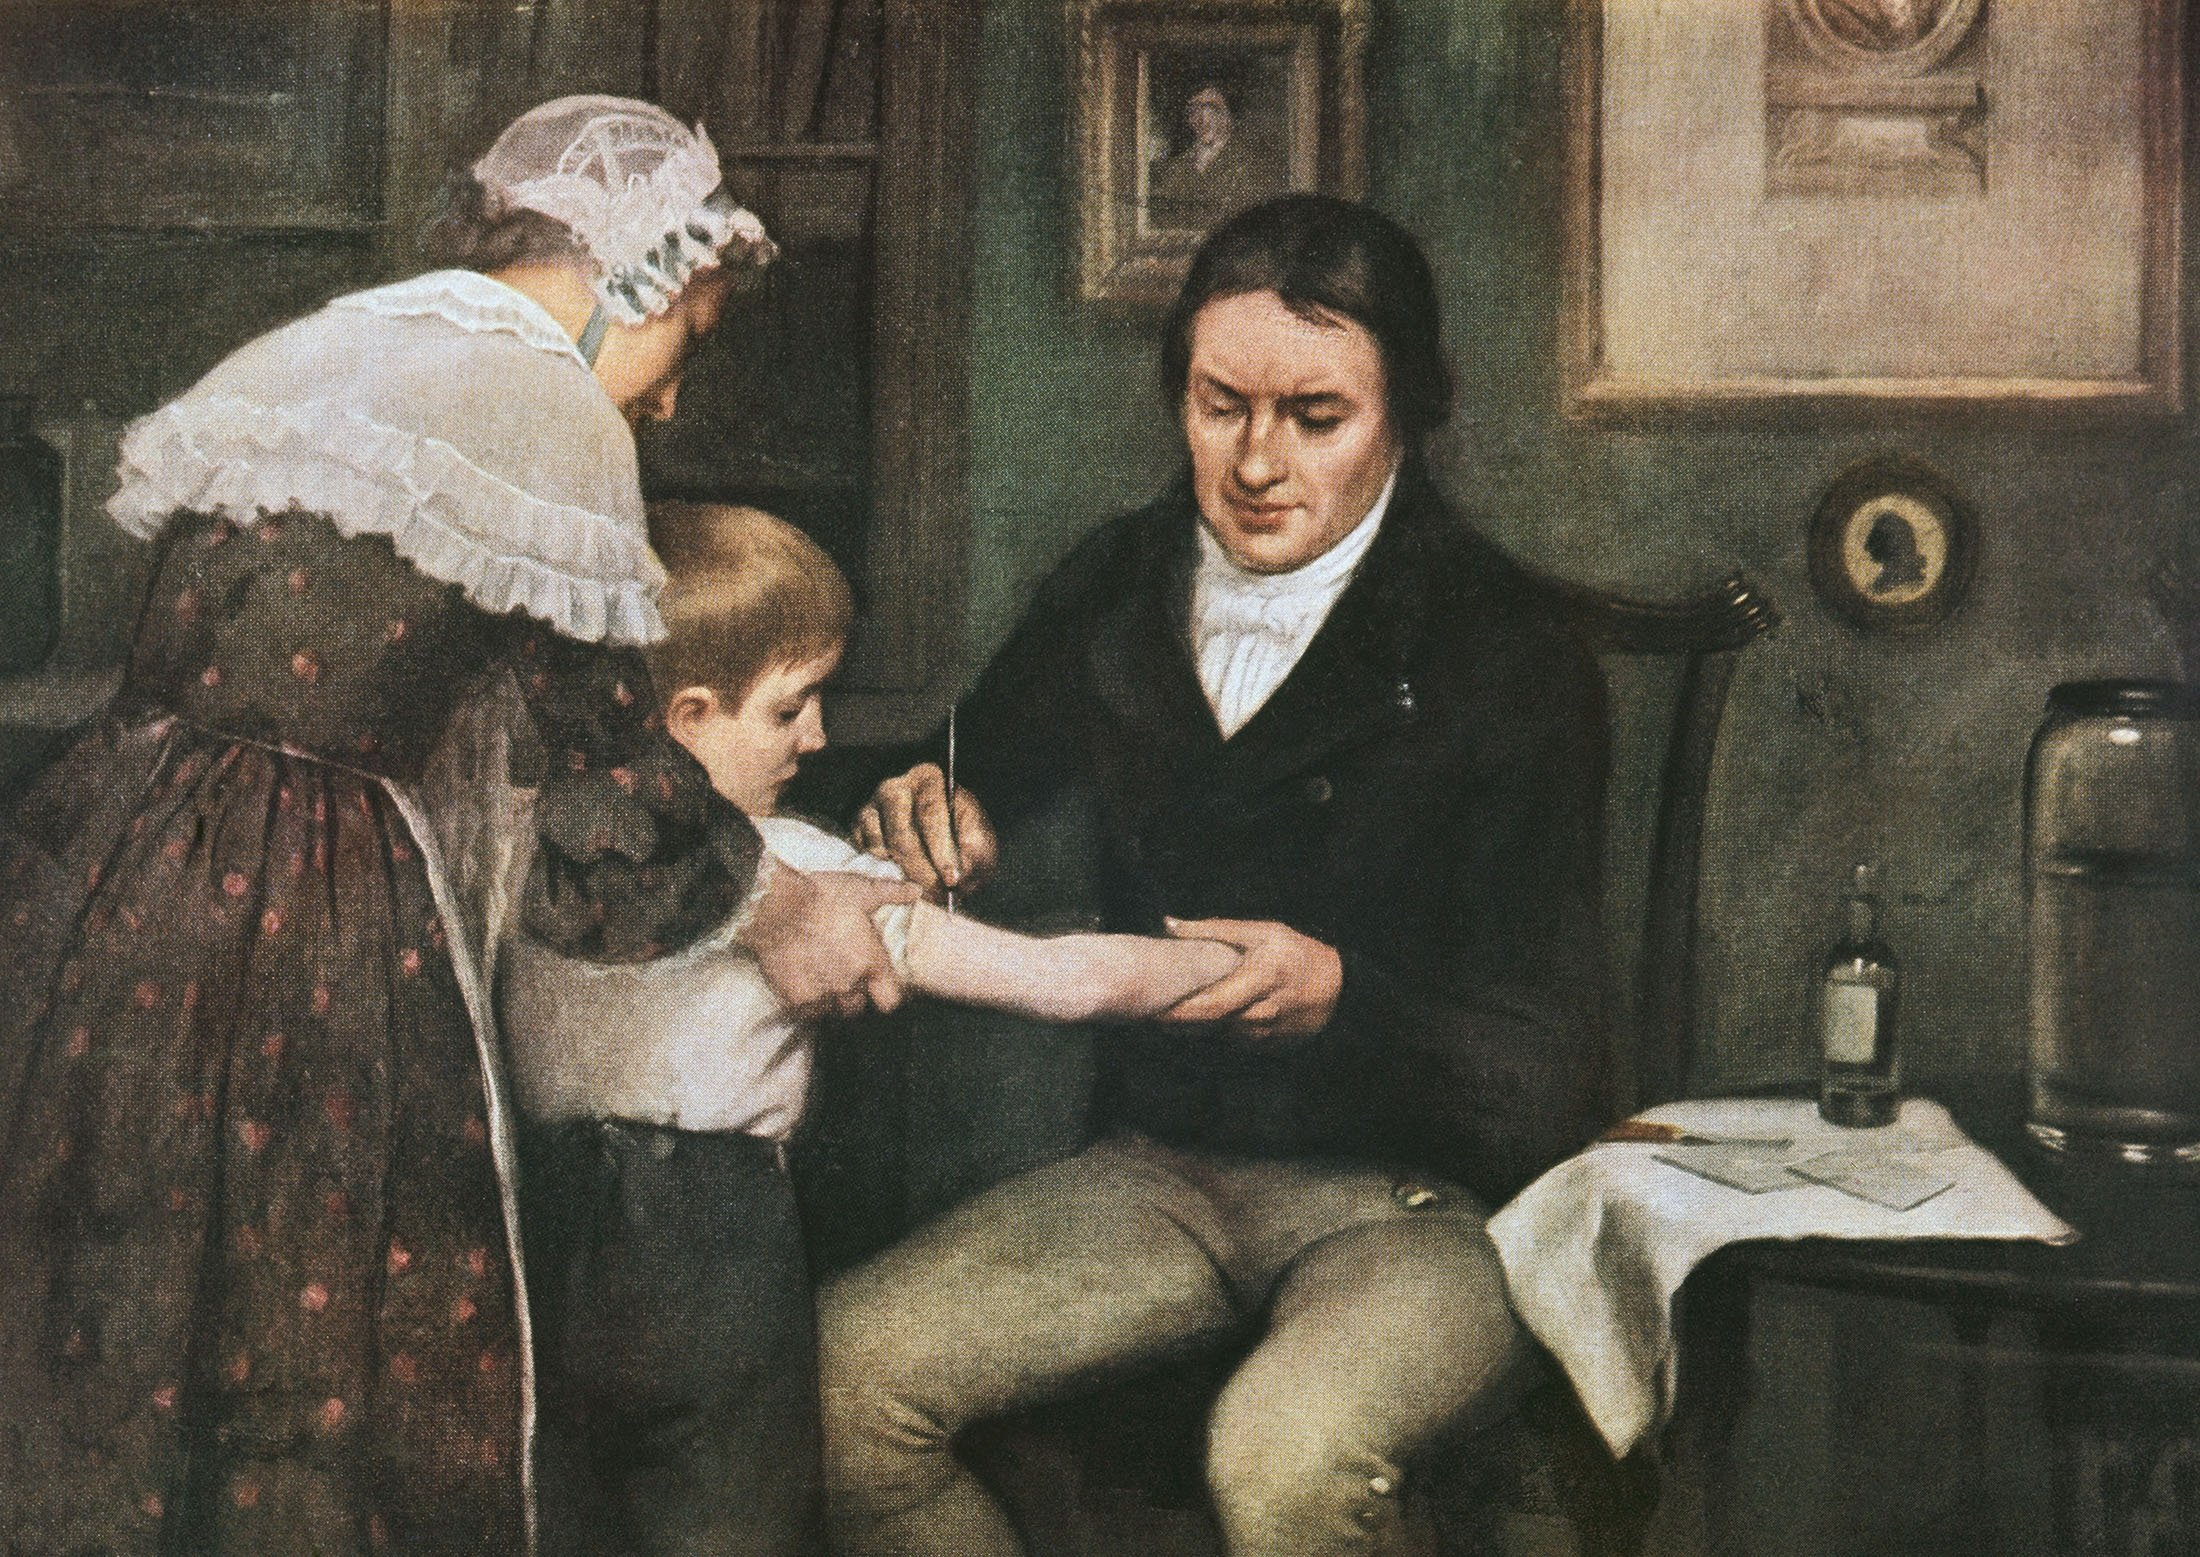 Dr. Edward Jenner (1749-1823) performing his first vaccination against smallpox on James Phipps, a boy of 8, May 14, 1796, oil on canvas by Ernest Board (1877-1934), 1920-1930, U.K. (Getty Images)